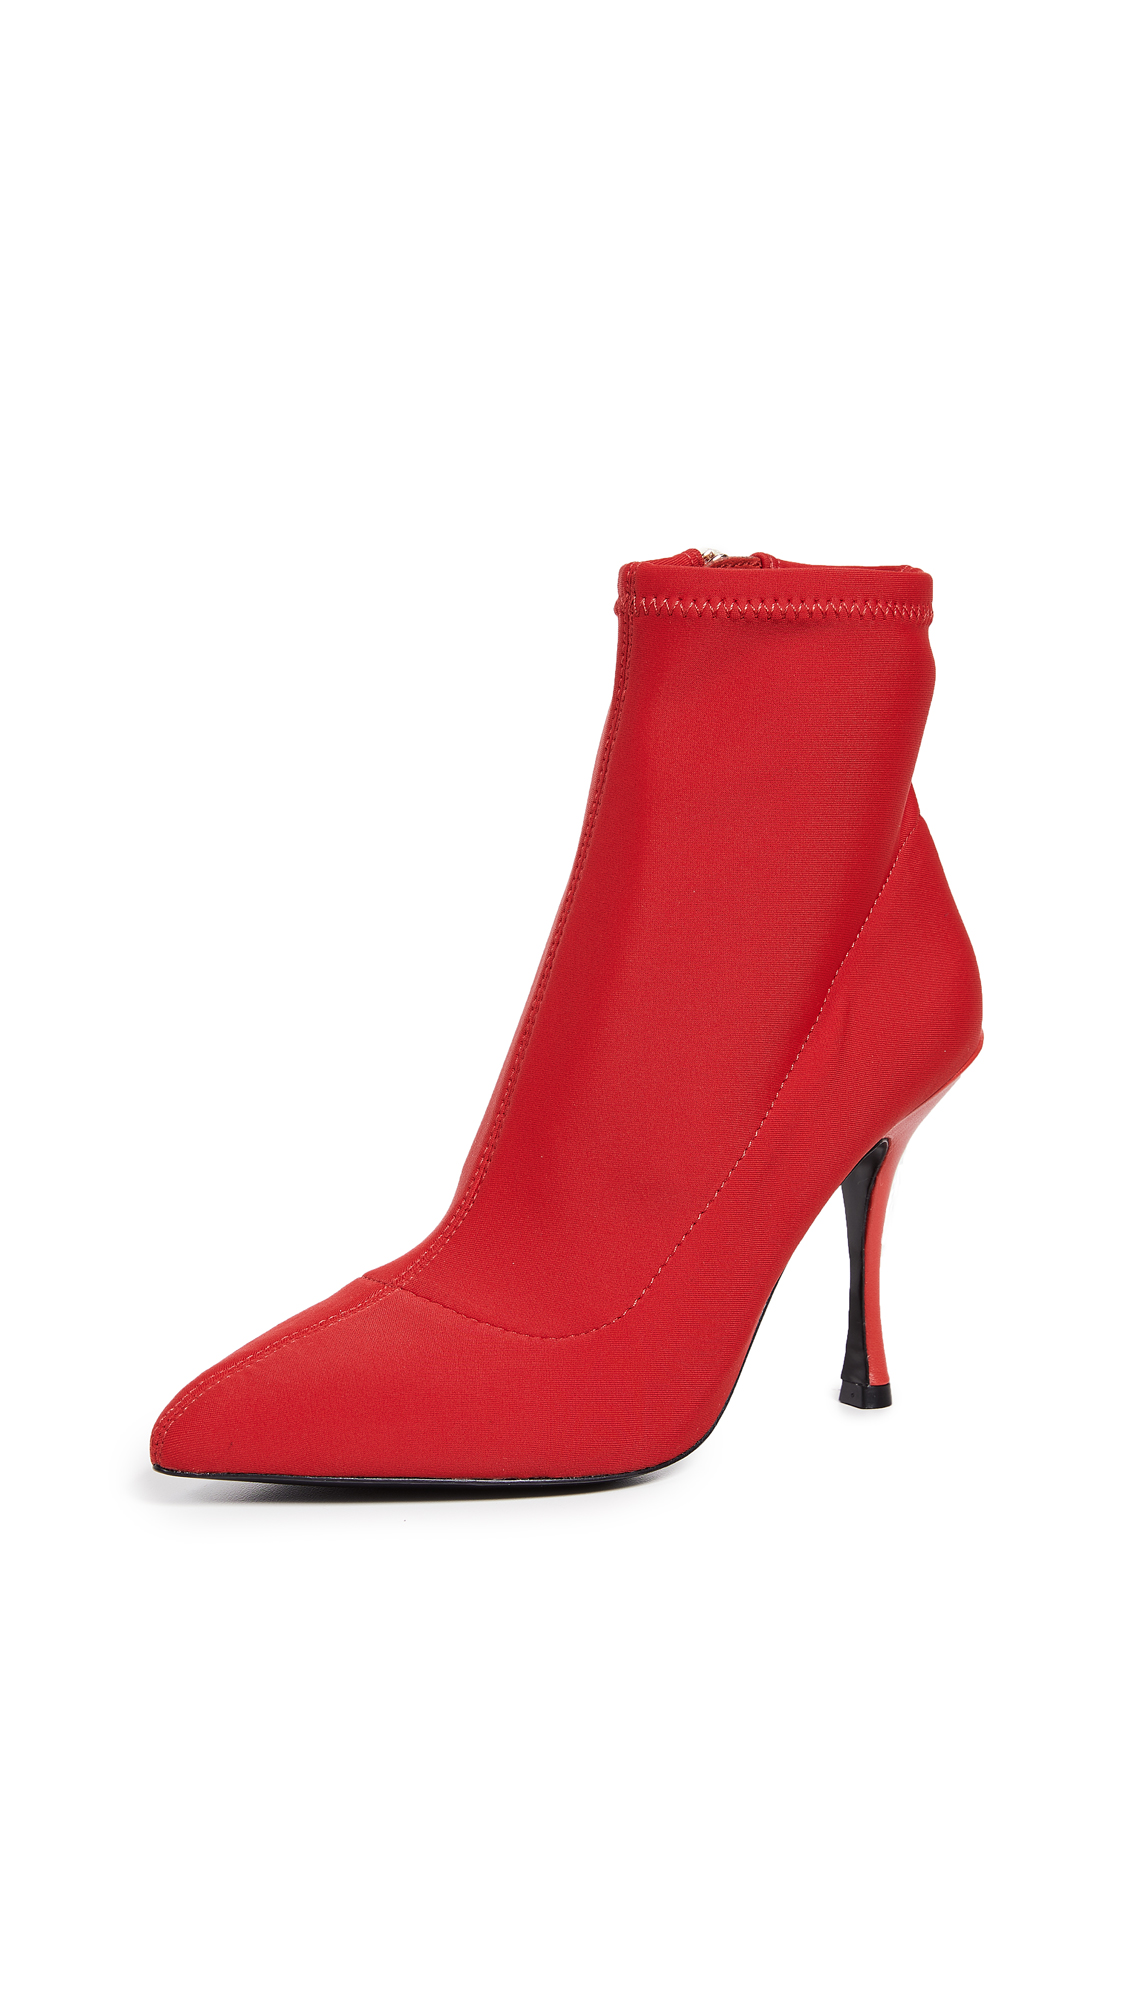 alice + olivia Irin Stretch Booties - Cherry